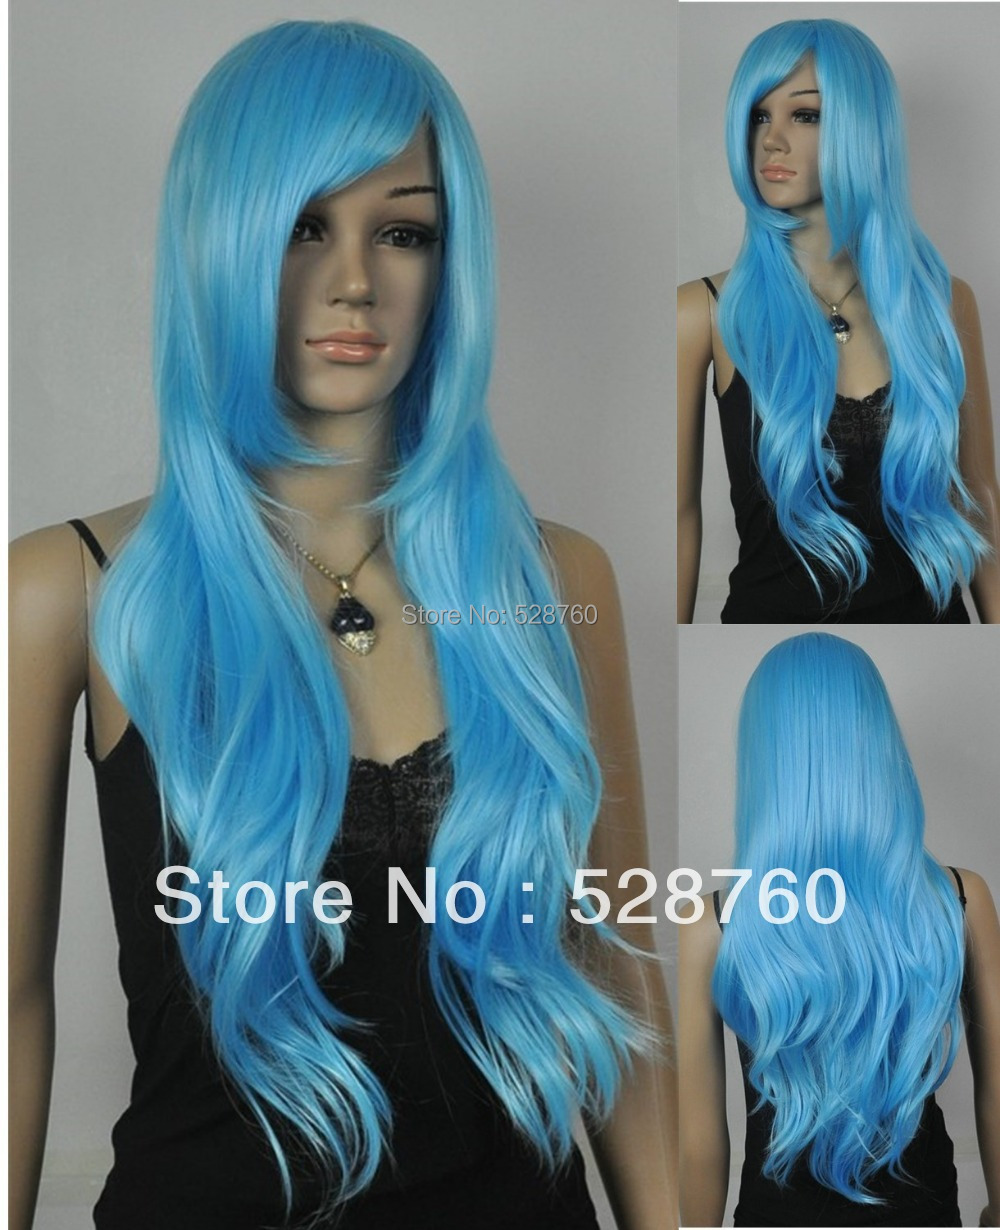 75cm Long wavy blue Cosplay Costume wig Anime lolita Wig Women Party Wig  Free shipping<br><br>Aliexpress